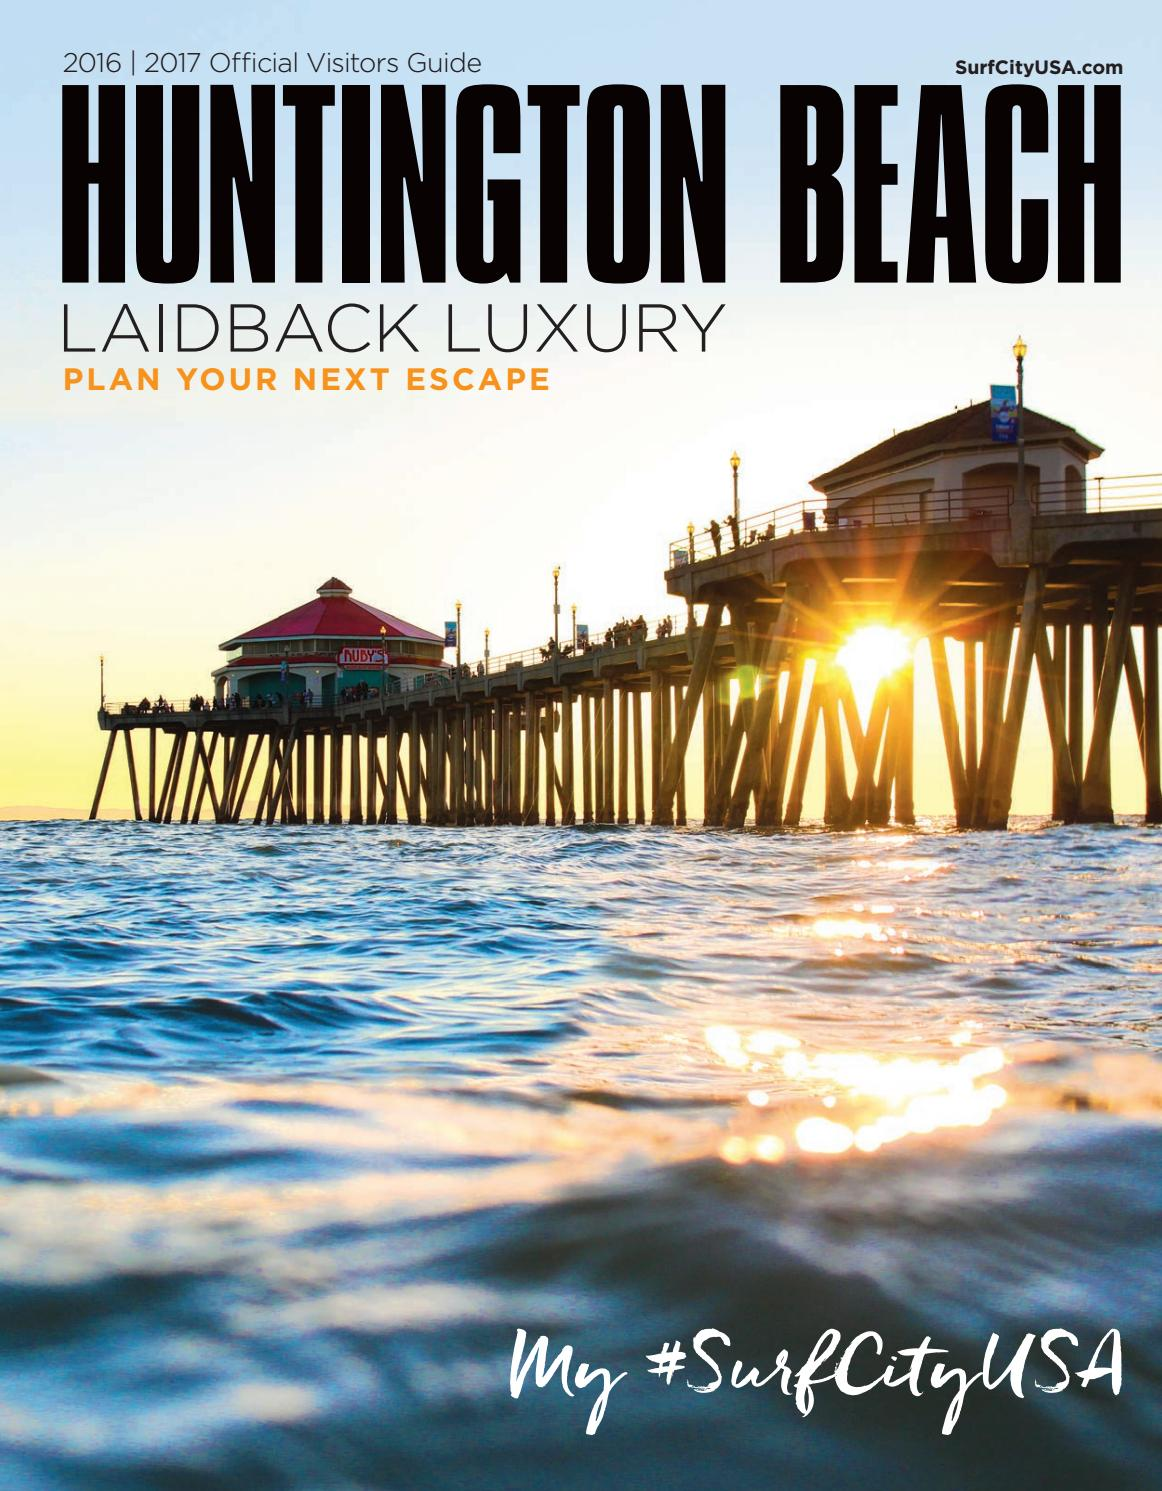 Cucina Alessa Huntington Beach Happy Hour Huntington Beach 2016 2017 Official Visitors Guide